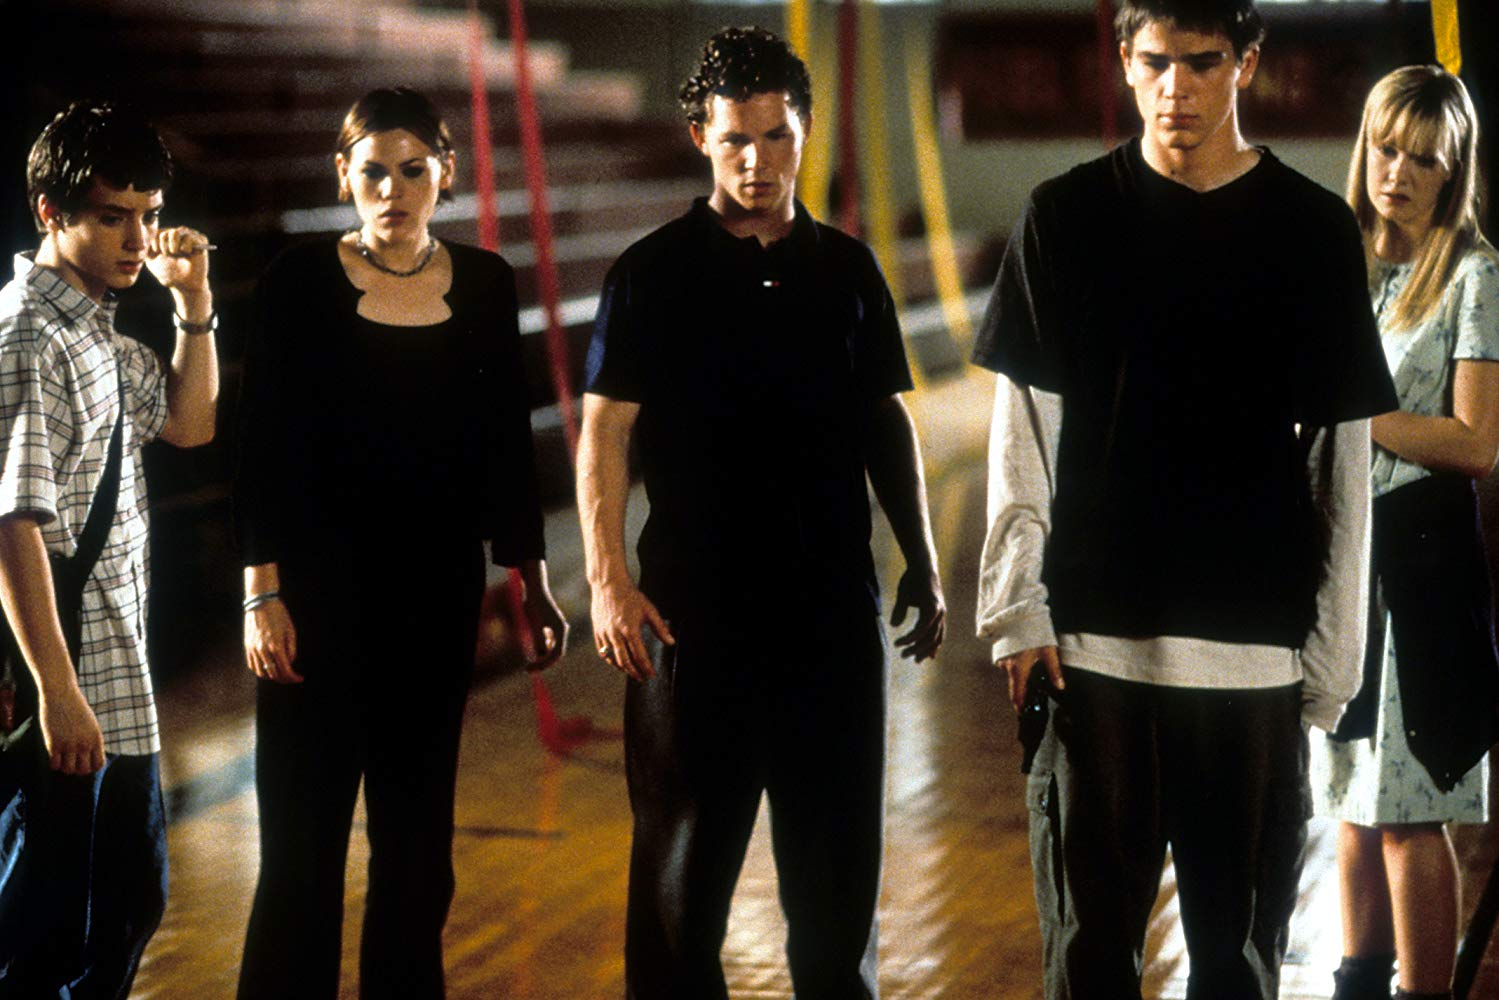 Teens vs alien body snatchers - Elijah Wood, Clea DuVall, Shawn Wayne Hatosy, Josh Hartnett and Laura Harris in The Faculty (1998)